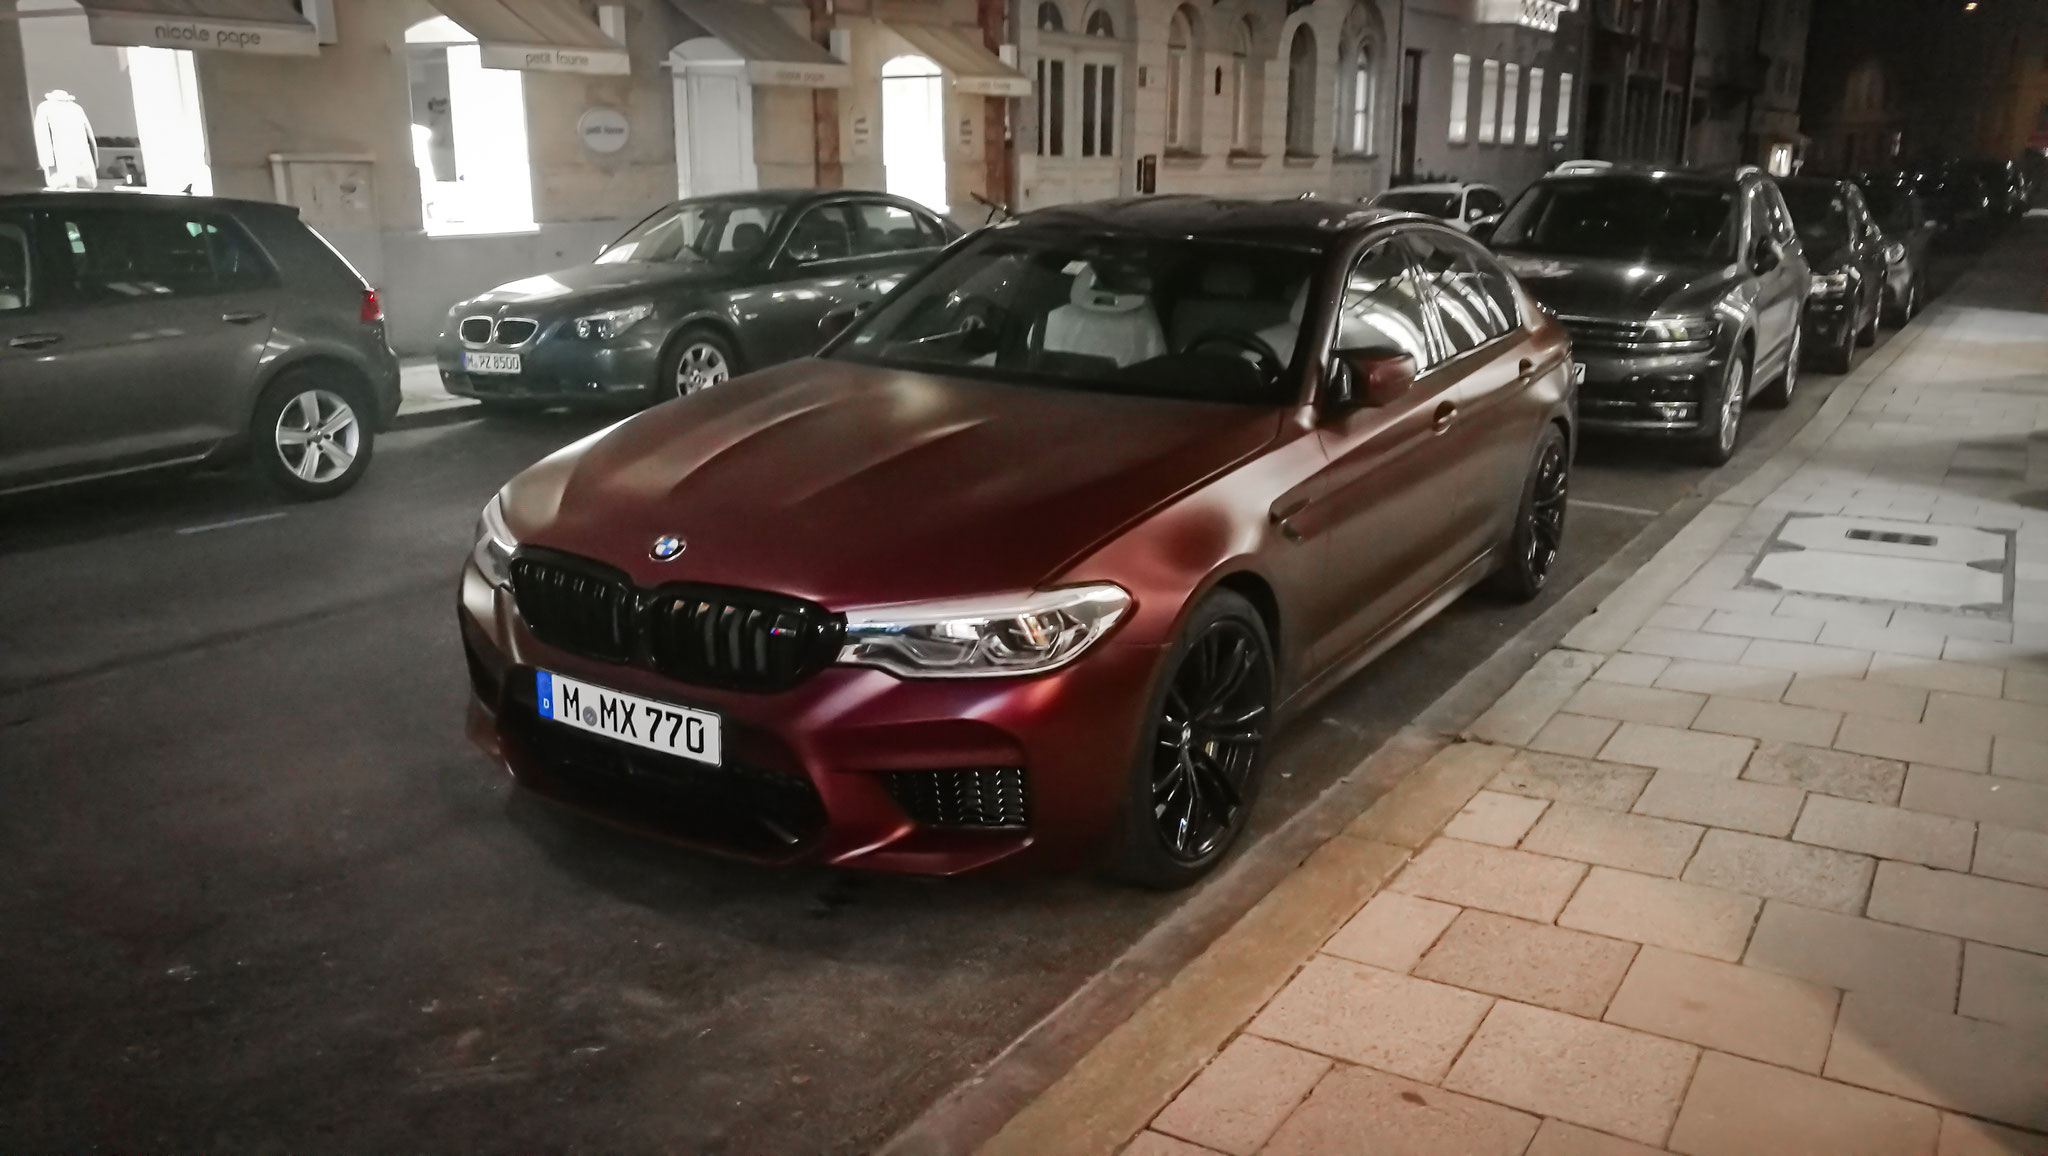 BMW M5 First Edition (1 of 400) - M-MX-770